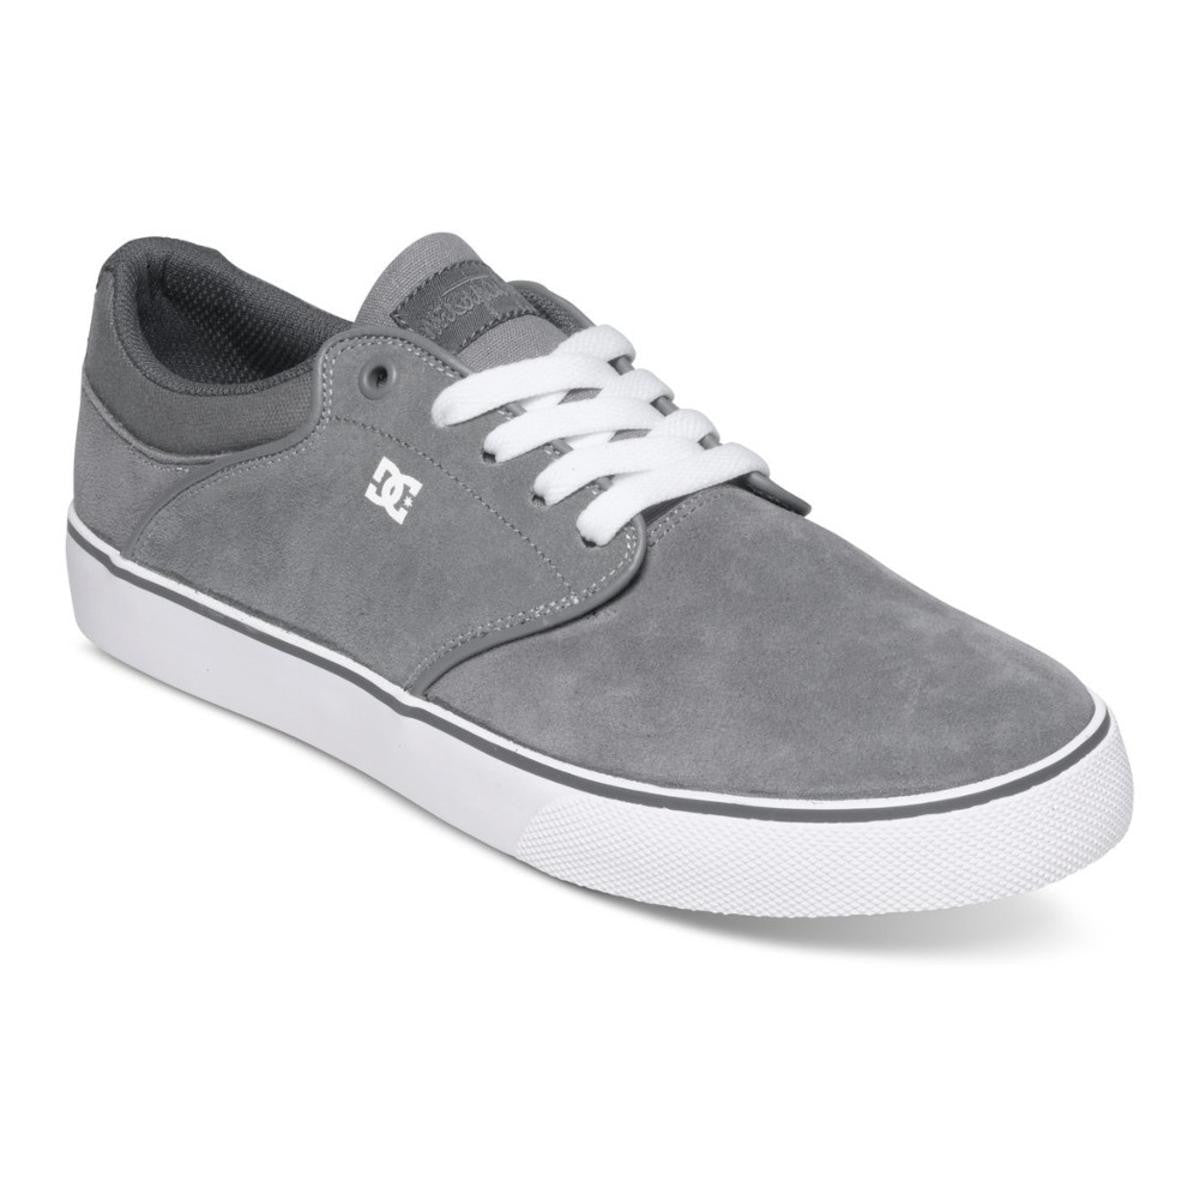 DC Mikey Taylor Shoes Men's Dark Grey Battleship Low Top Multiple Sizes New